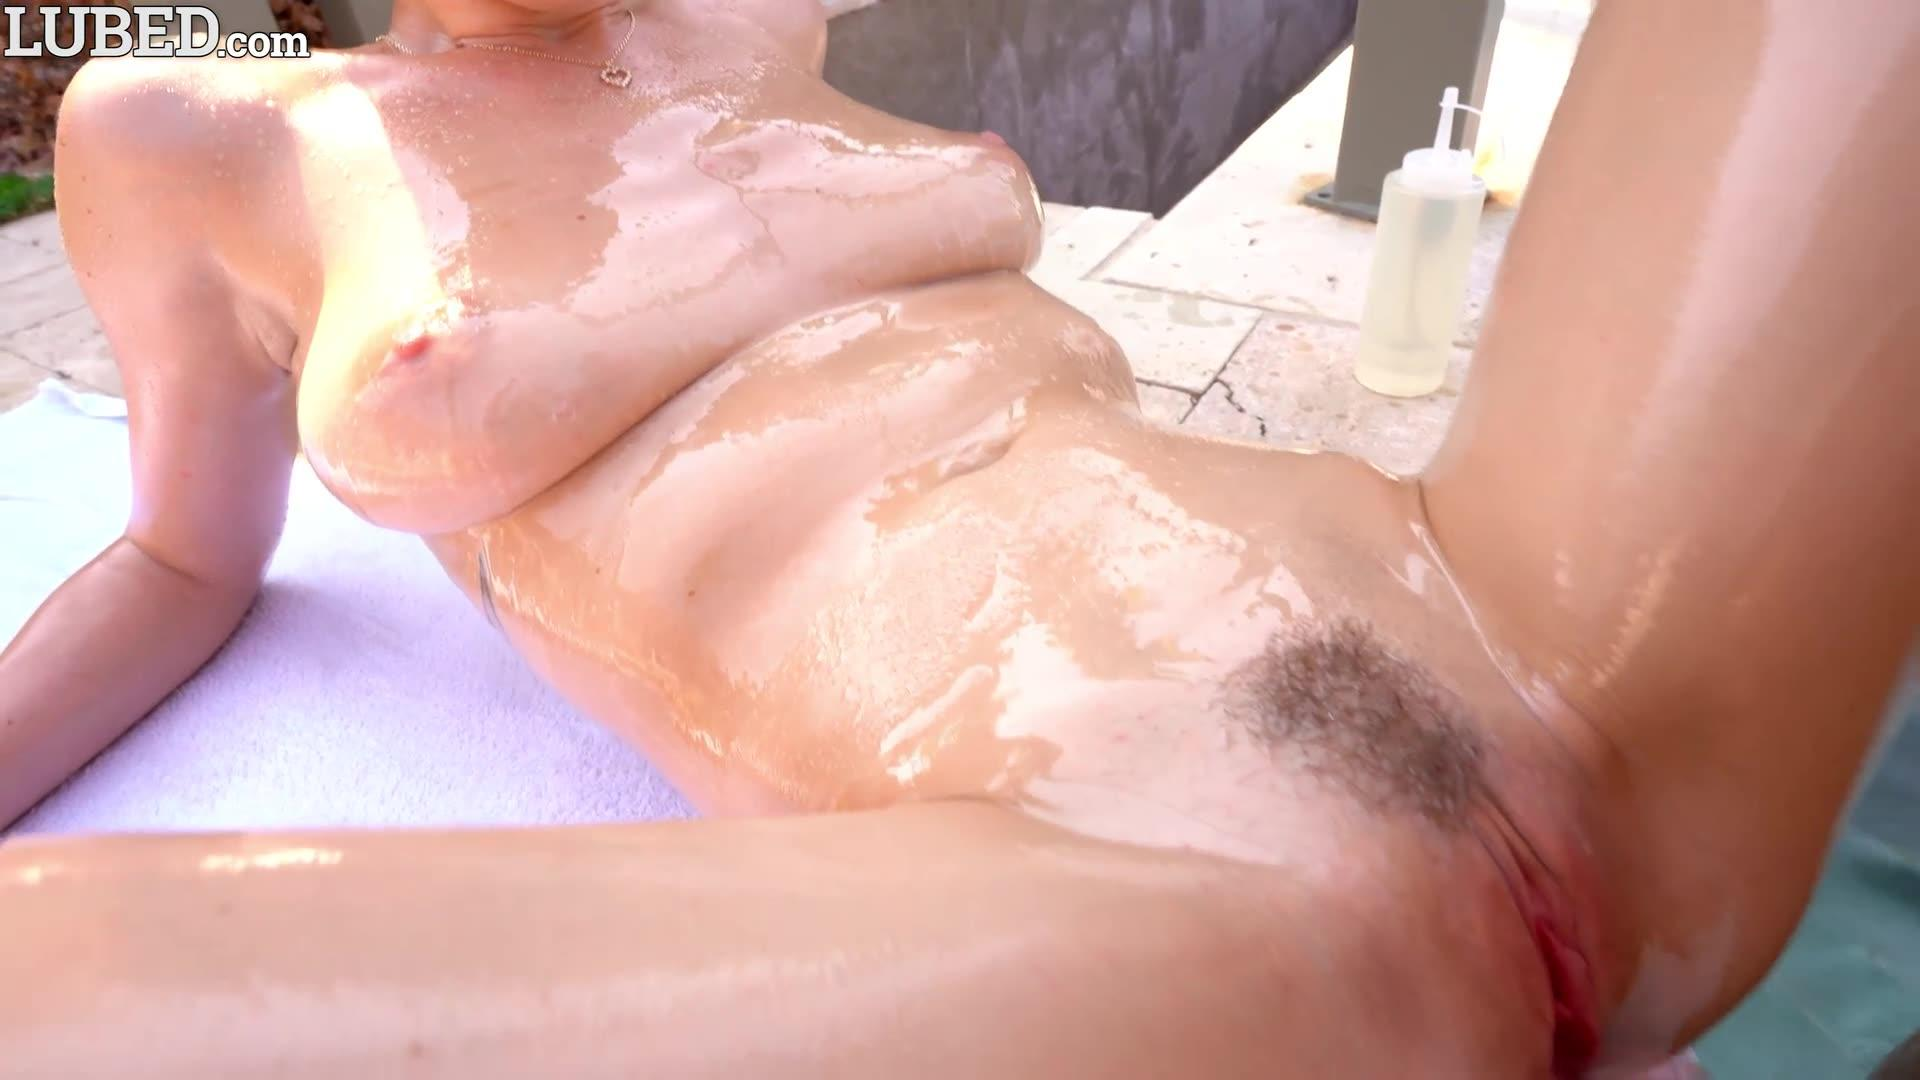 Lubed 20 10 20 Skye Blue Wet Pool Sex XXX 1080p MP4-XXX